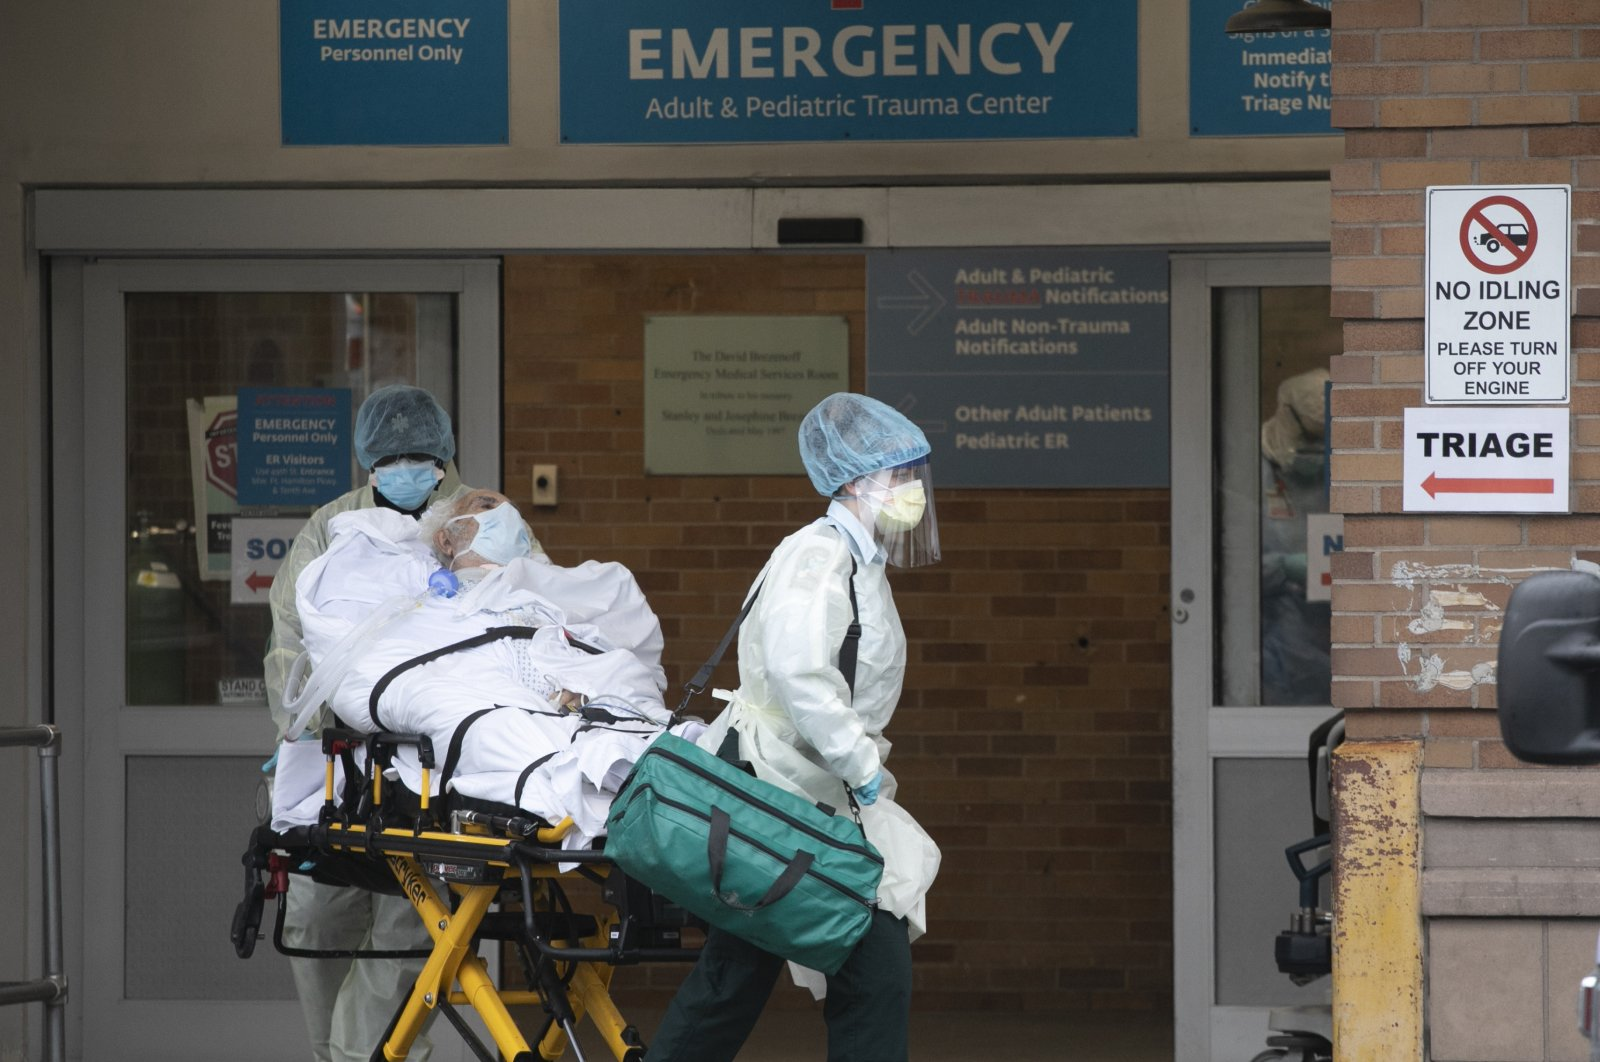 A patient is moved by healthcare workers at Maimonides Medical Center, Wednesday, May 6, 2020, in New York during the coronavirus pandemic. (AP Photo)